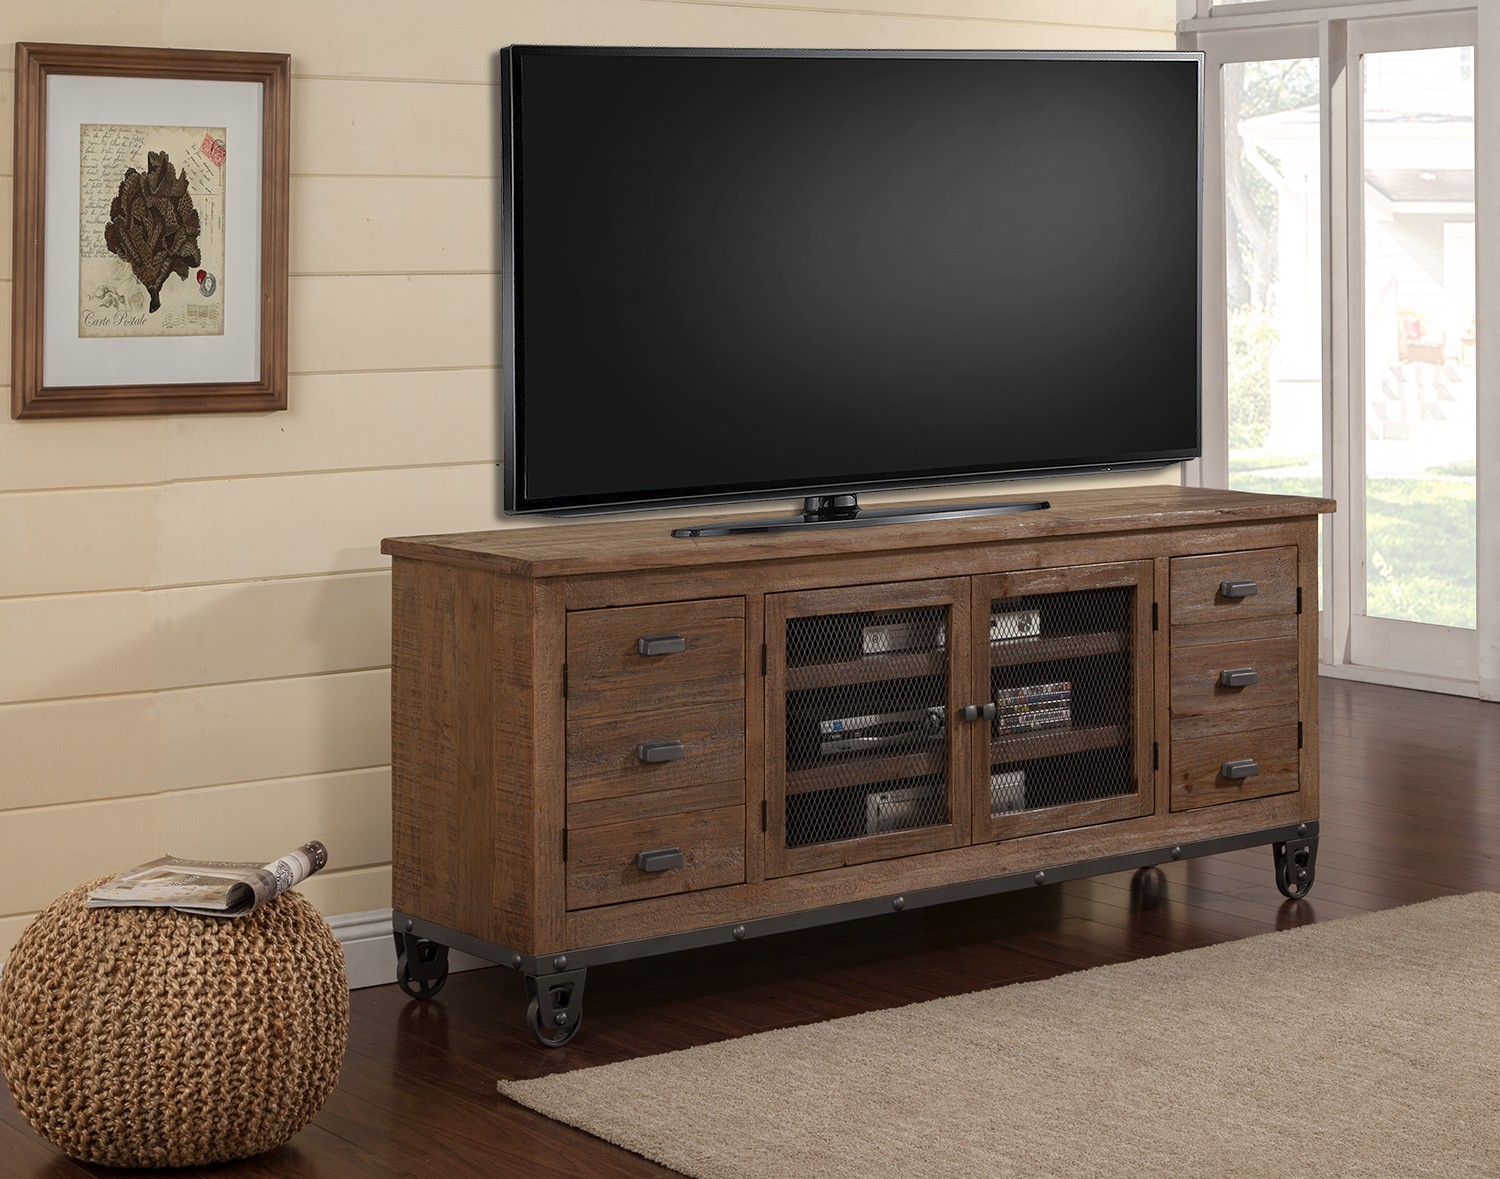 Parker House LaPaz 76-inch Console with wheels - Rustic Worn Pine